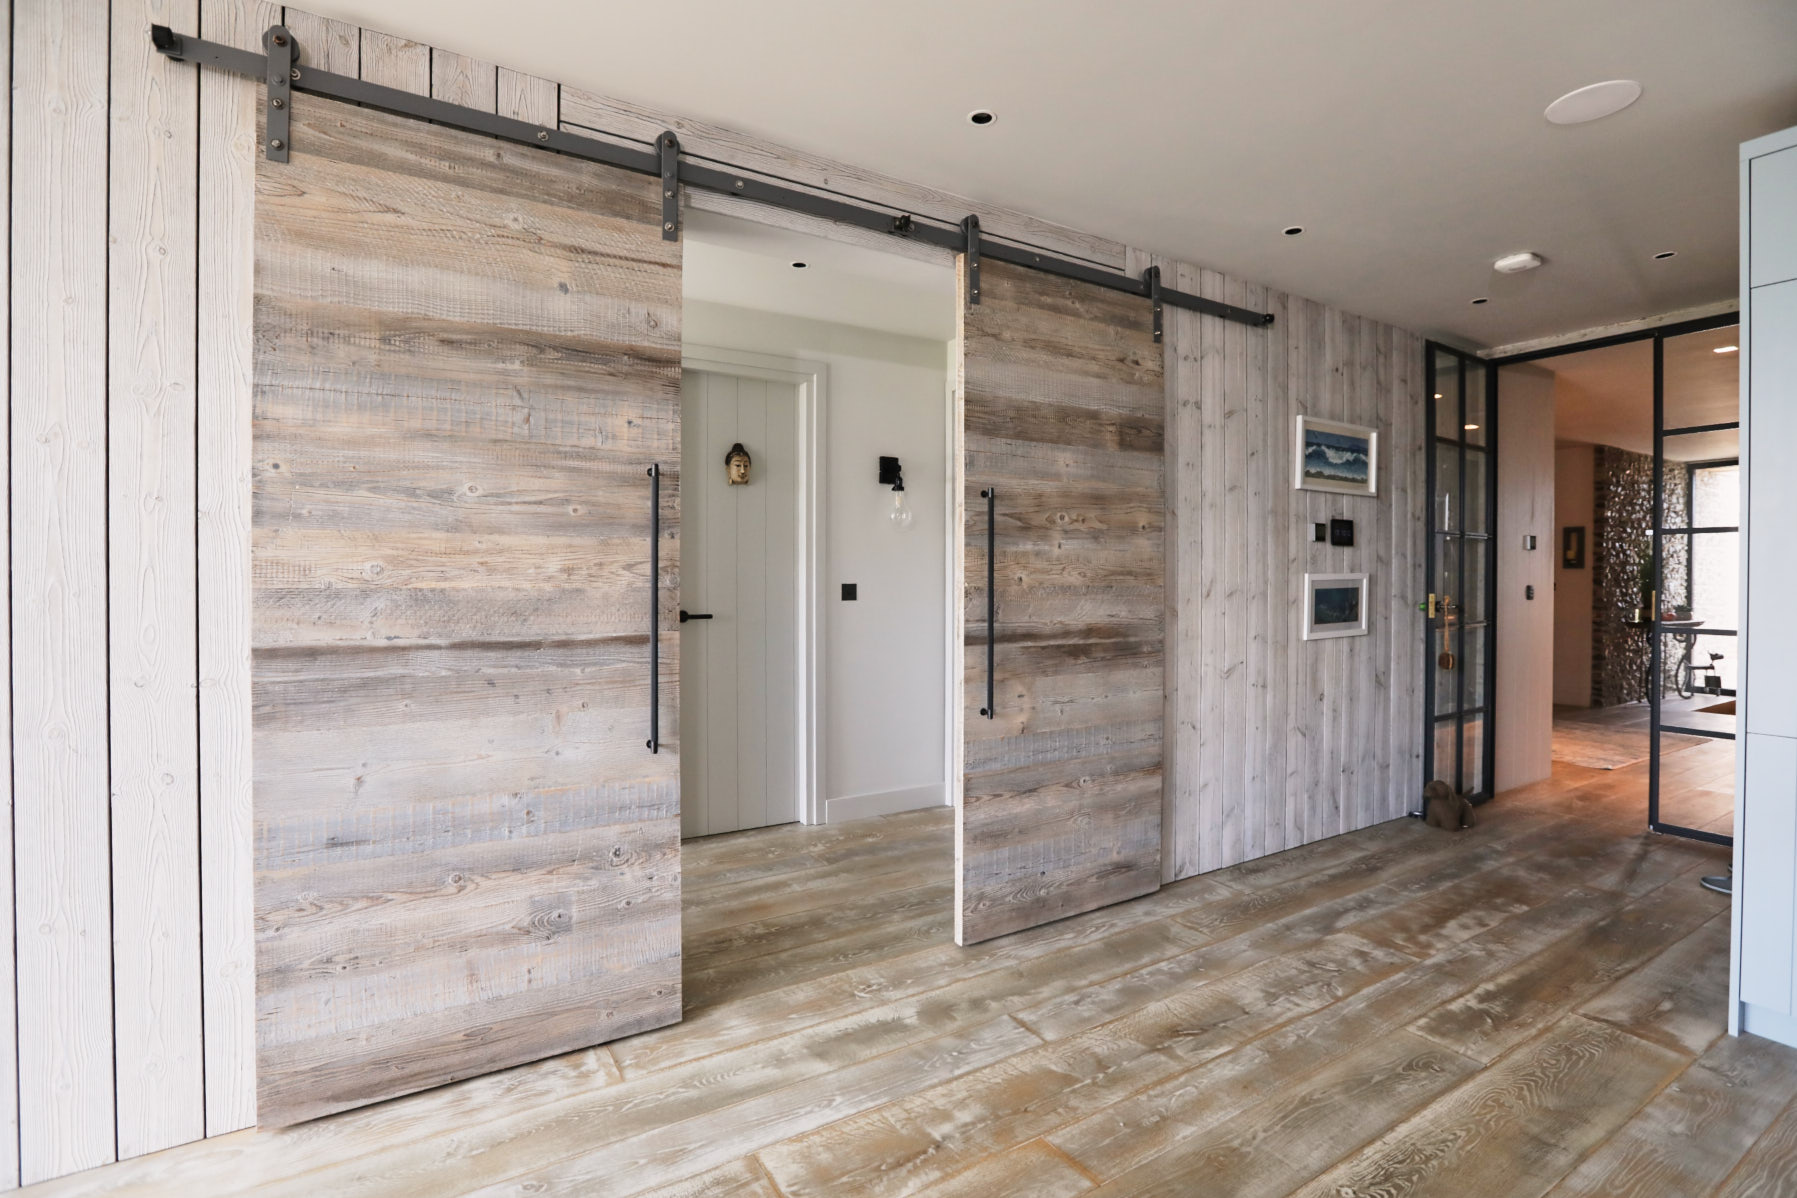 Barn sliding door with metal rail